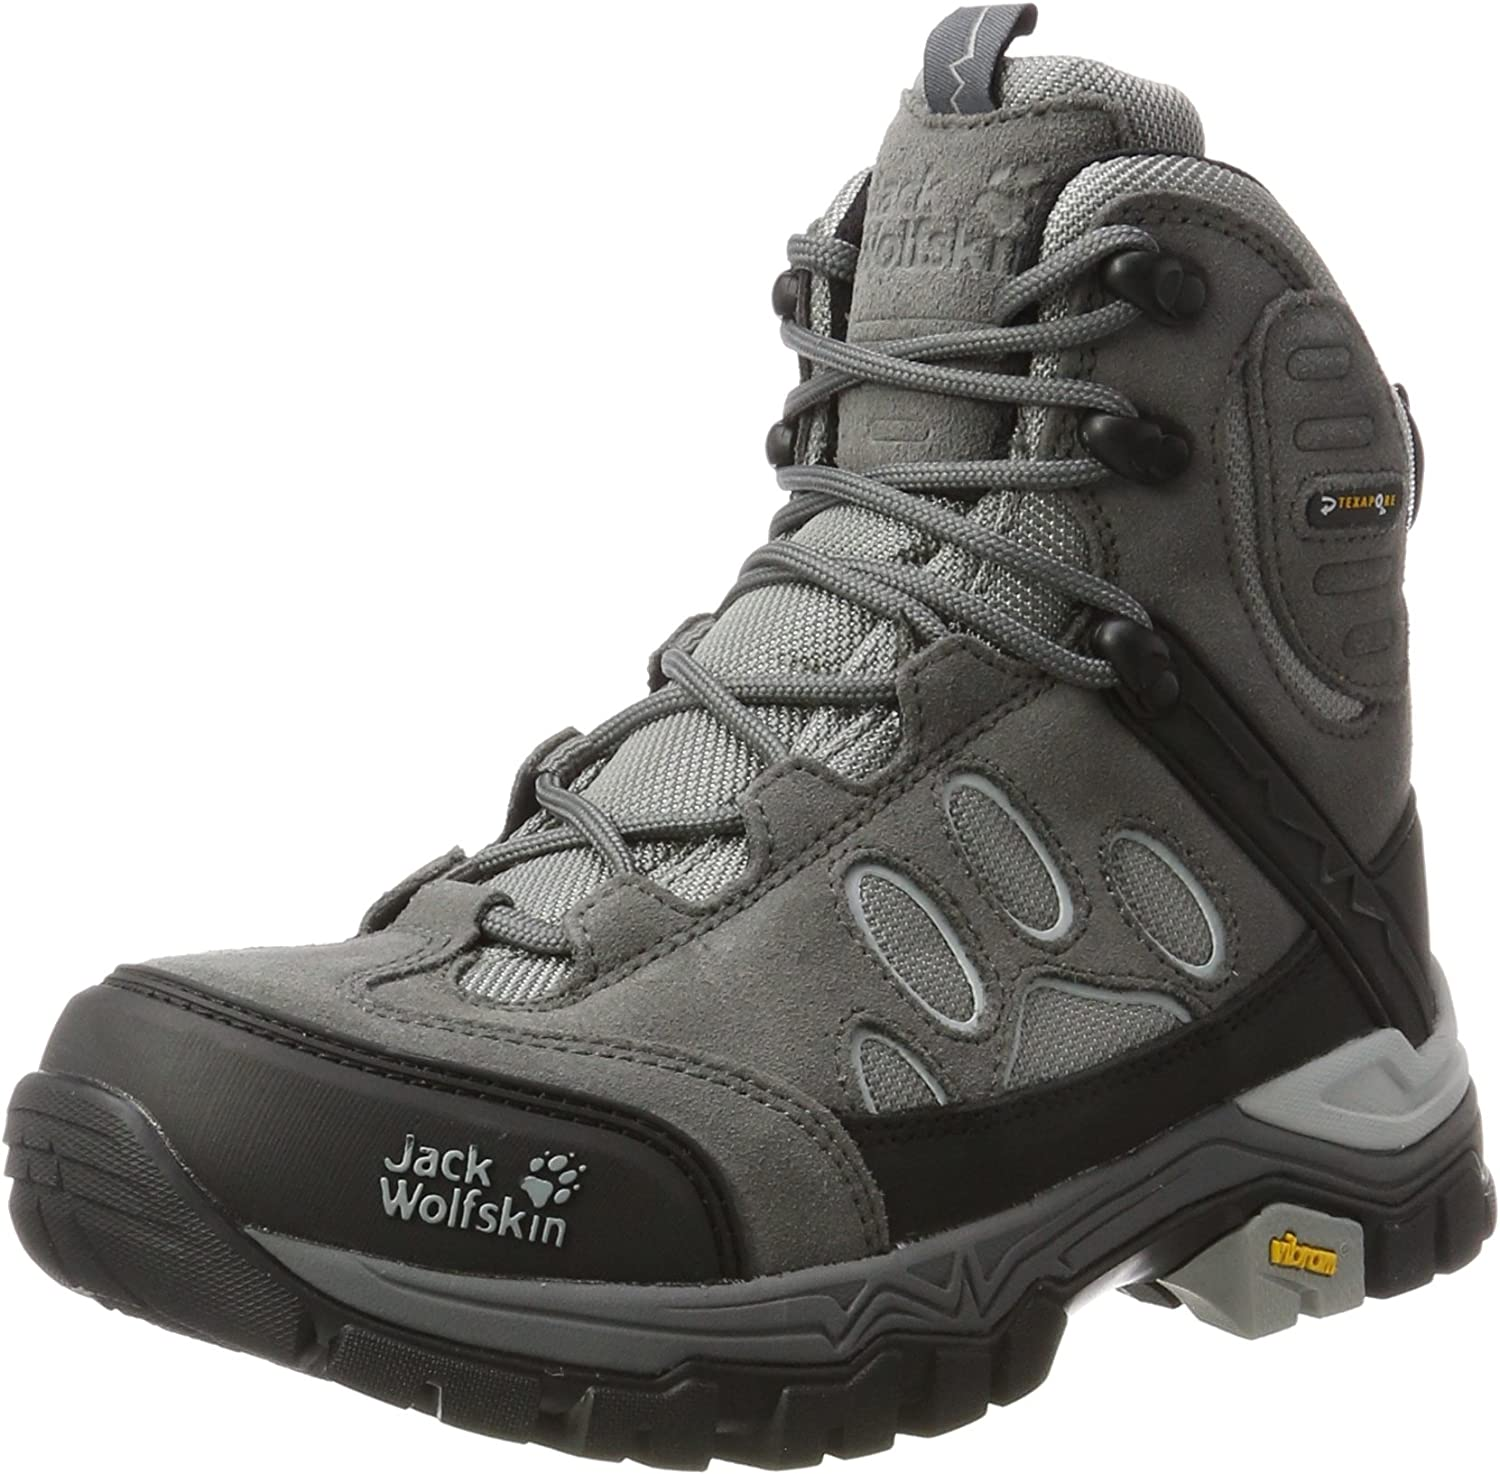 Jack Wolfskin Womens Impulse Texapore O2+ MID W Hiking Boot